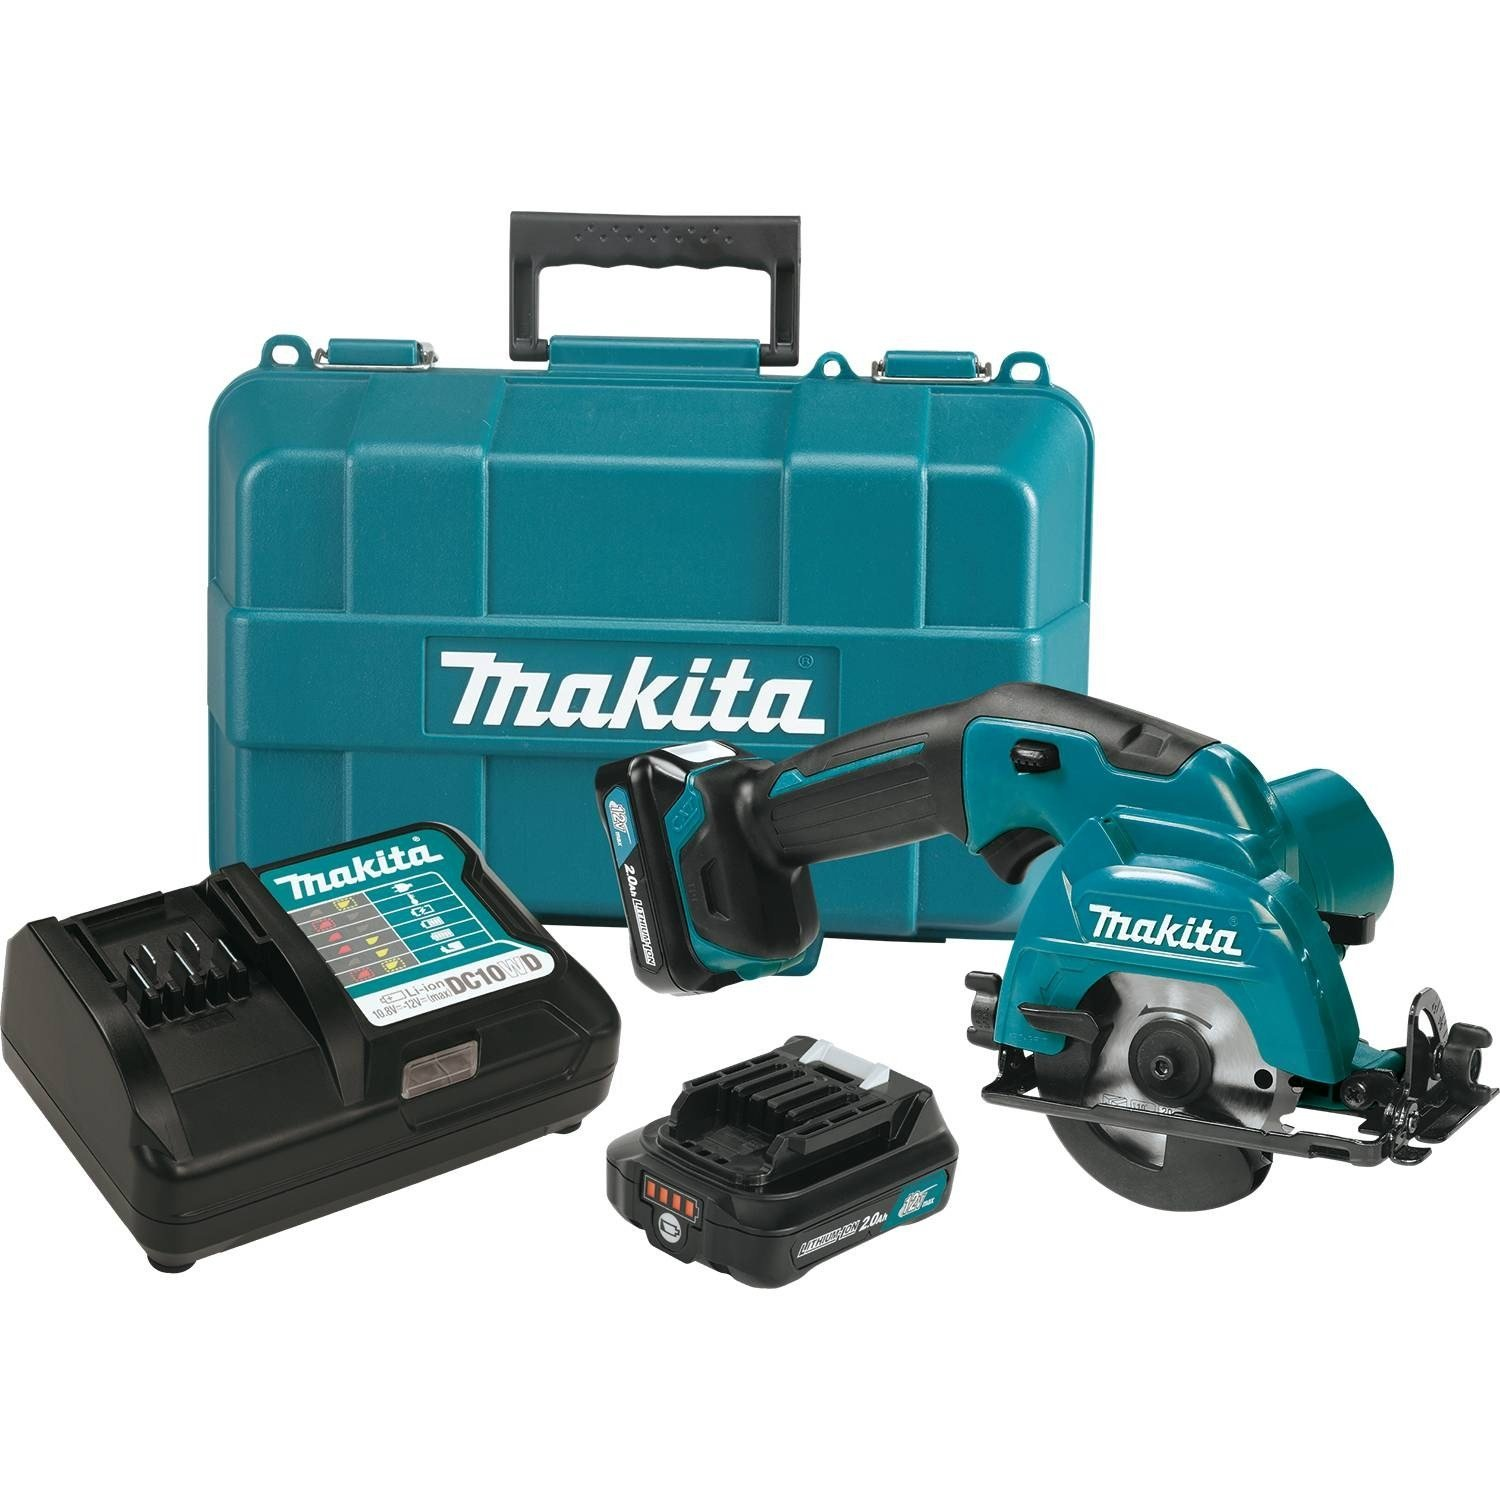 5. Makita Cordless Circular Saw kit (SH02R1)